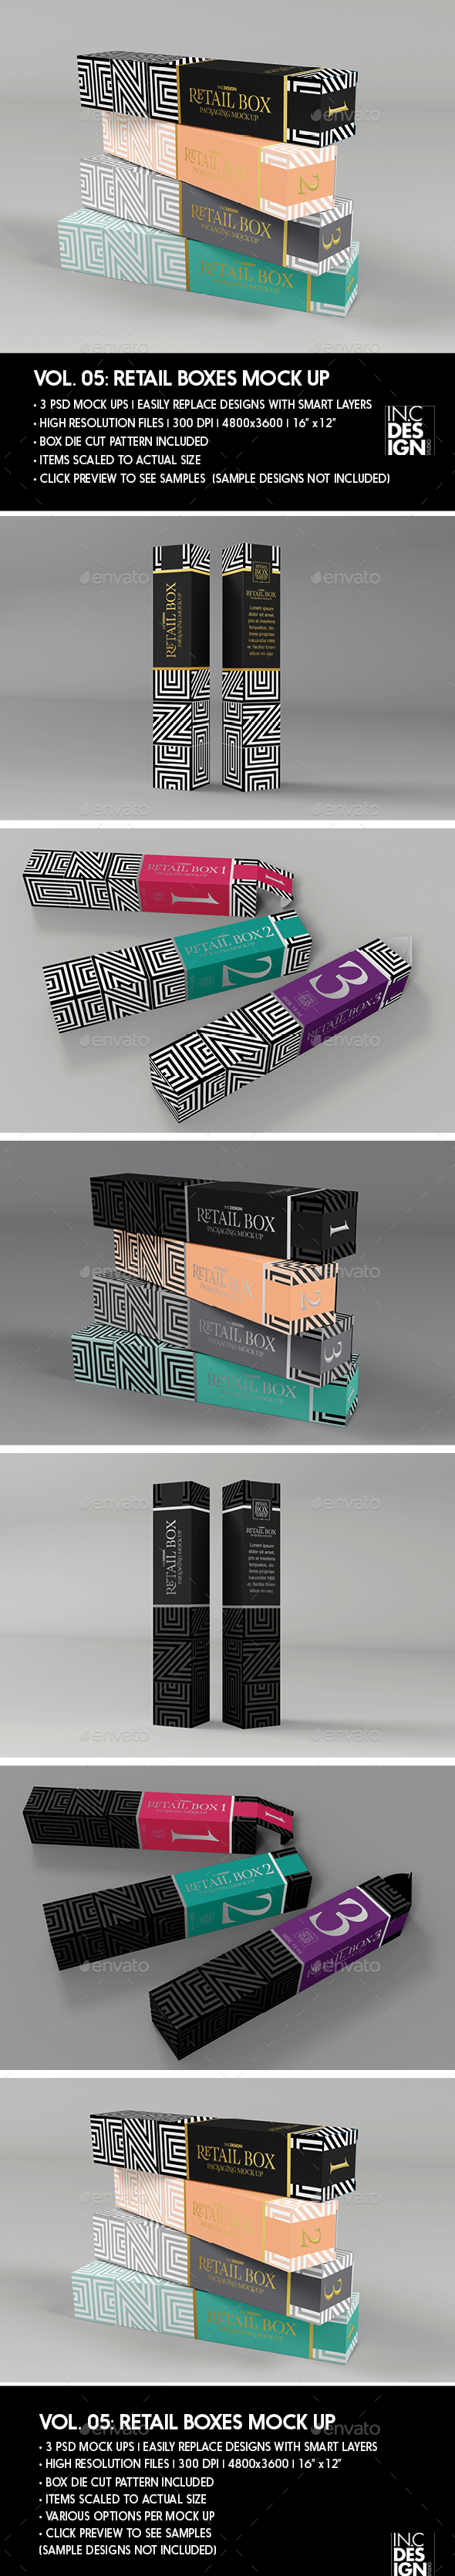 GraphicRiver Retail Boxes Vol.5 Narrow Cosmetic or Perfume Box Packaging Mock Ups 20556328